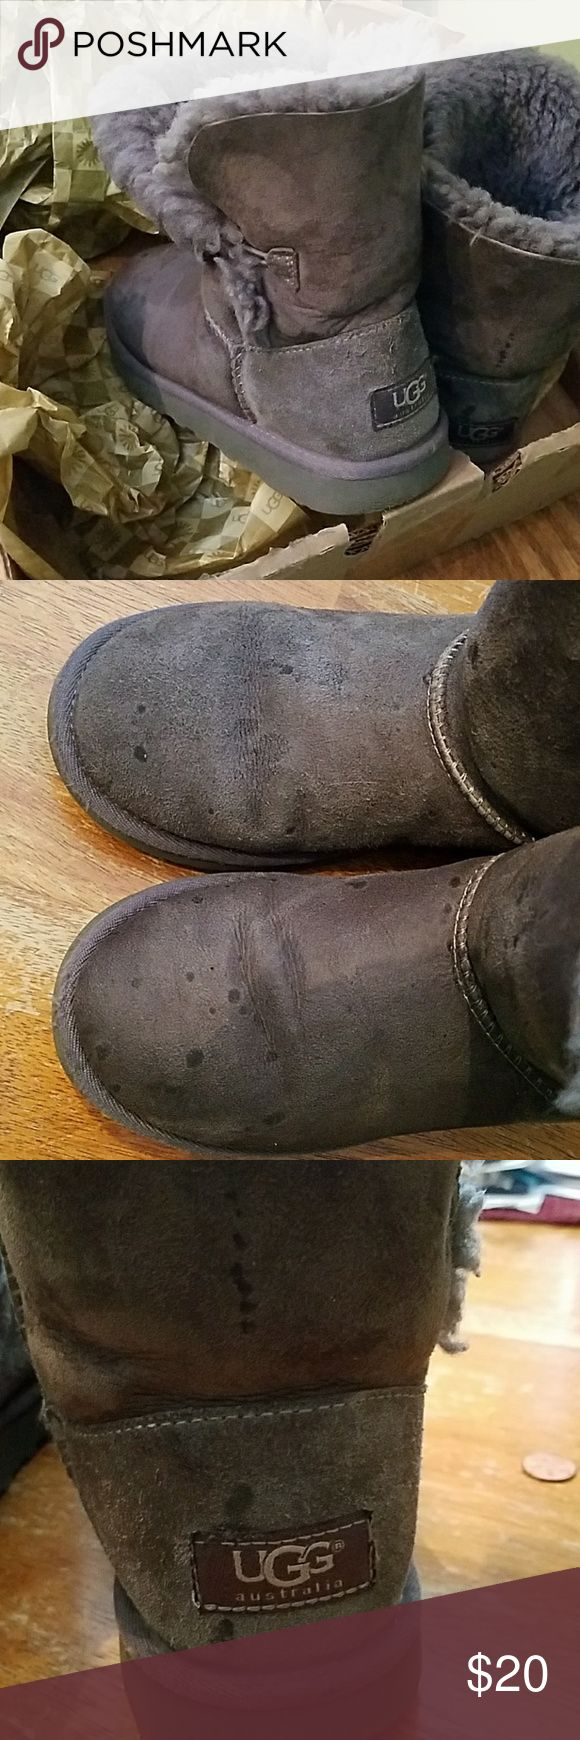 UGG BOOTS SIZE 3 GIRL UGG BOOTS! Need to be cleaned! Just don't want to mess with them! My daughter out grew them. We just need to get rid of them! 😉 UGG Shoes Boots